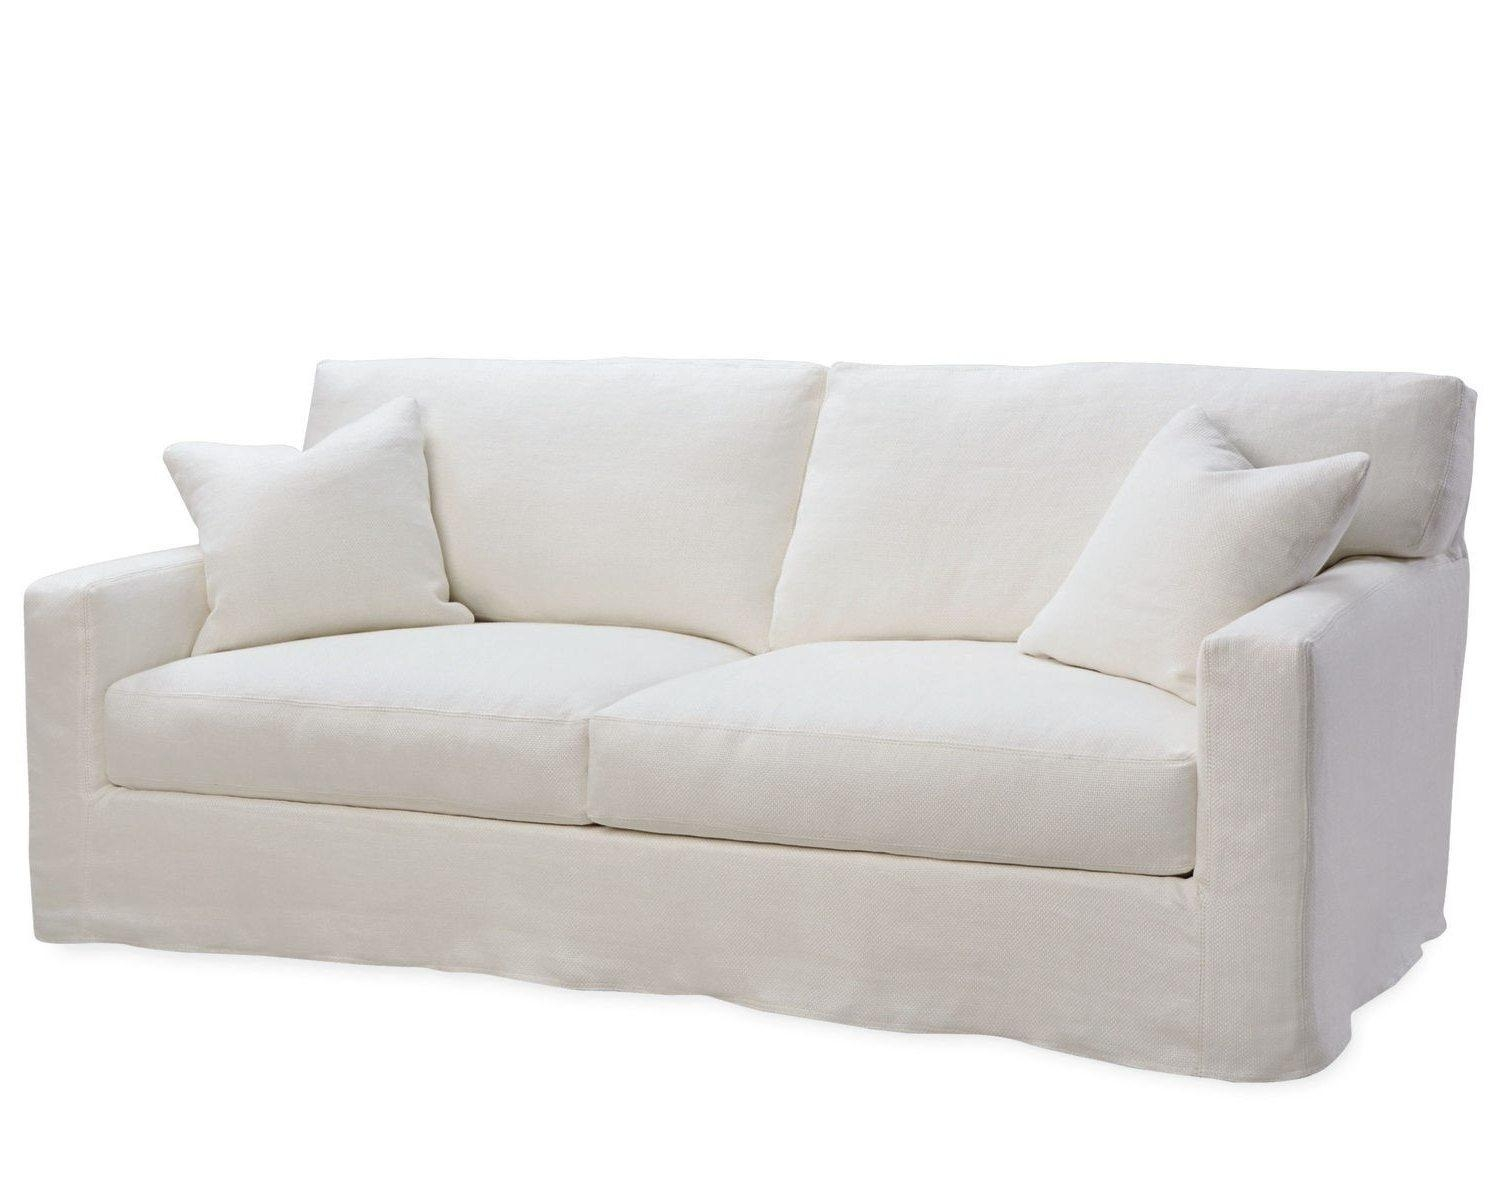 Slipcover Sleeper Sofa – Interior Design Intended For Slipcovers For Sleeper Sofas (Image 14 of 20)